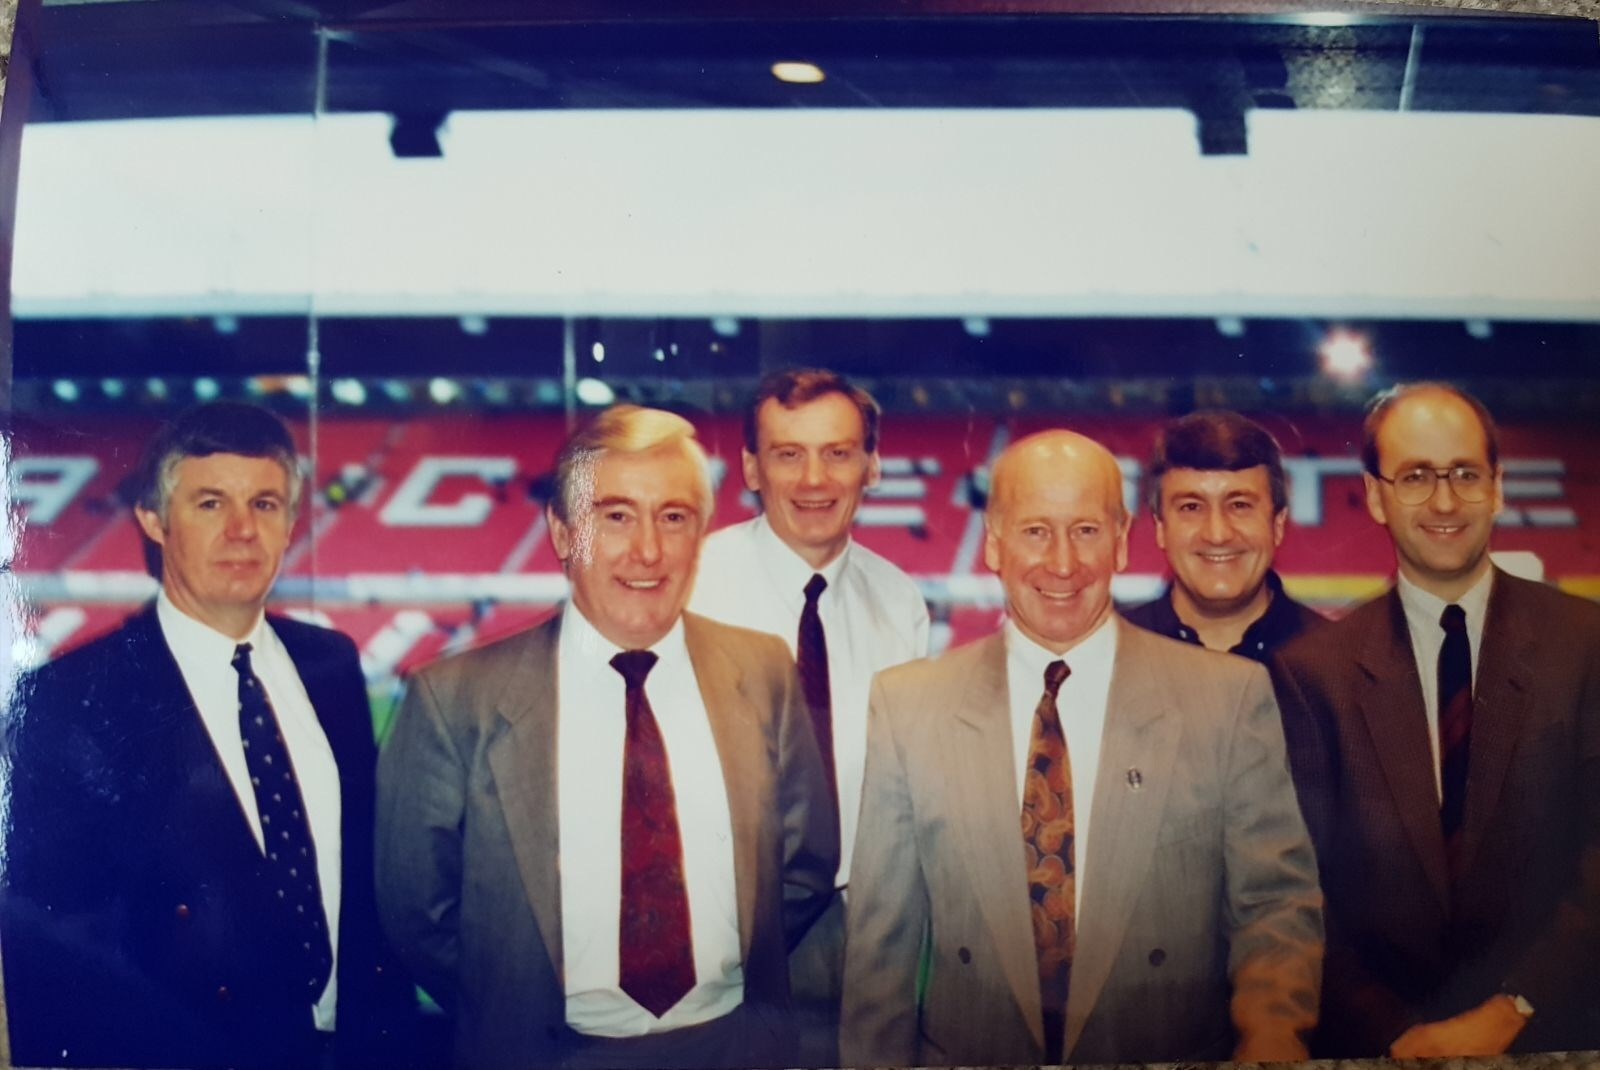 A day at Old Trafford with Bobby Charlton arranged by Chris Mac